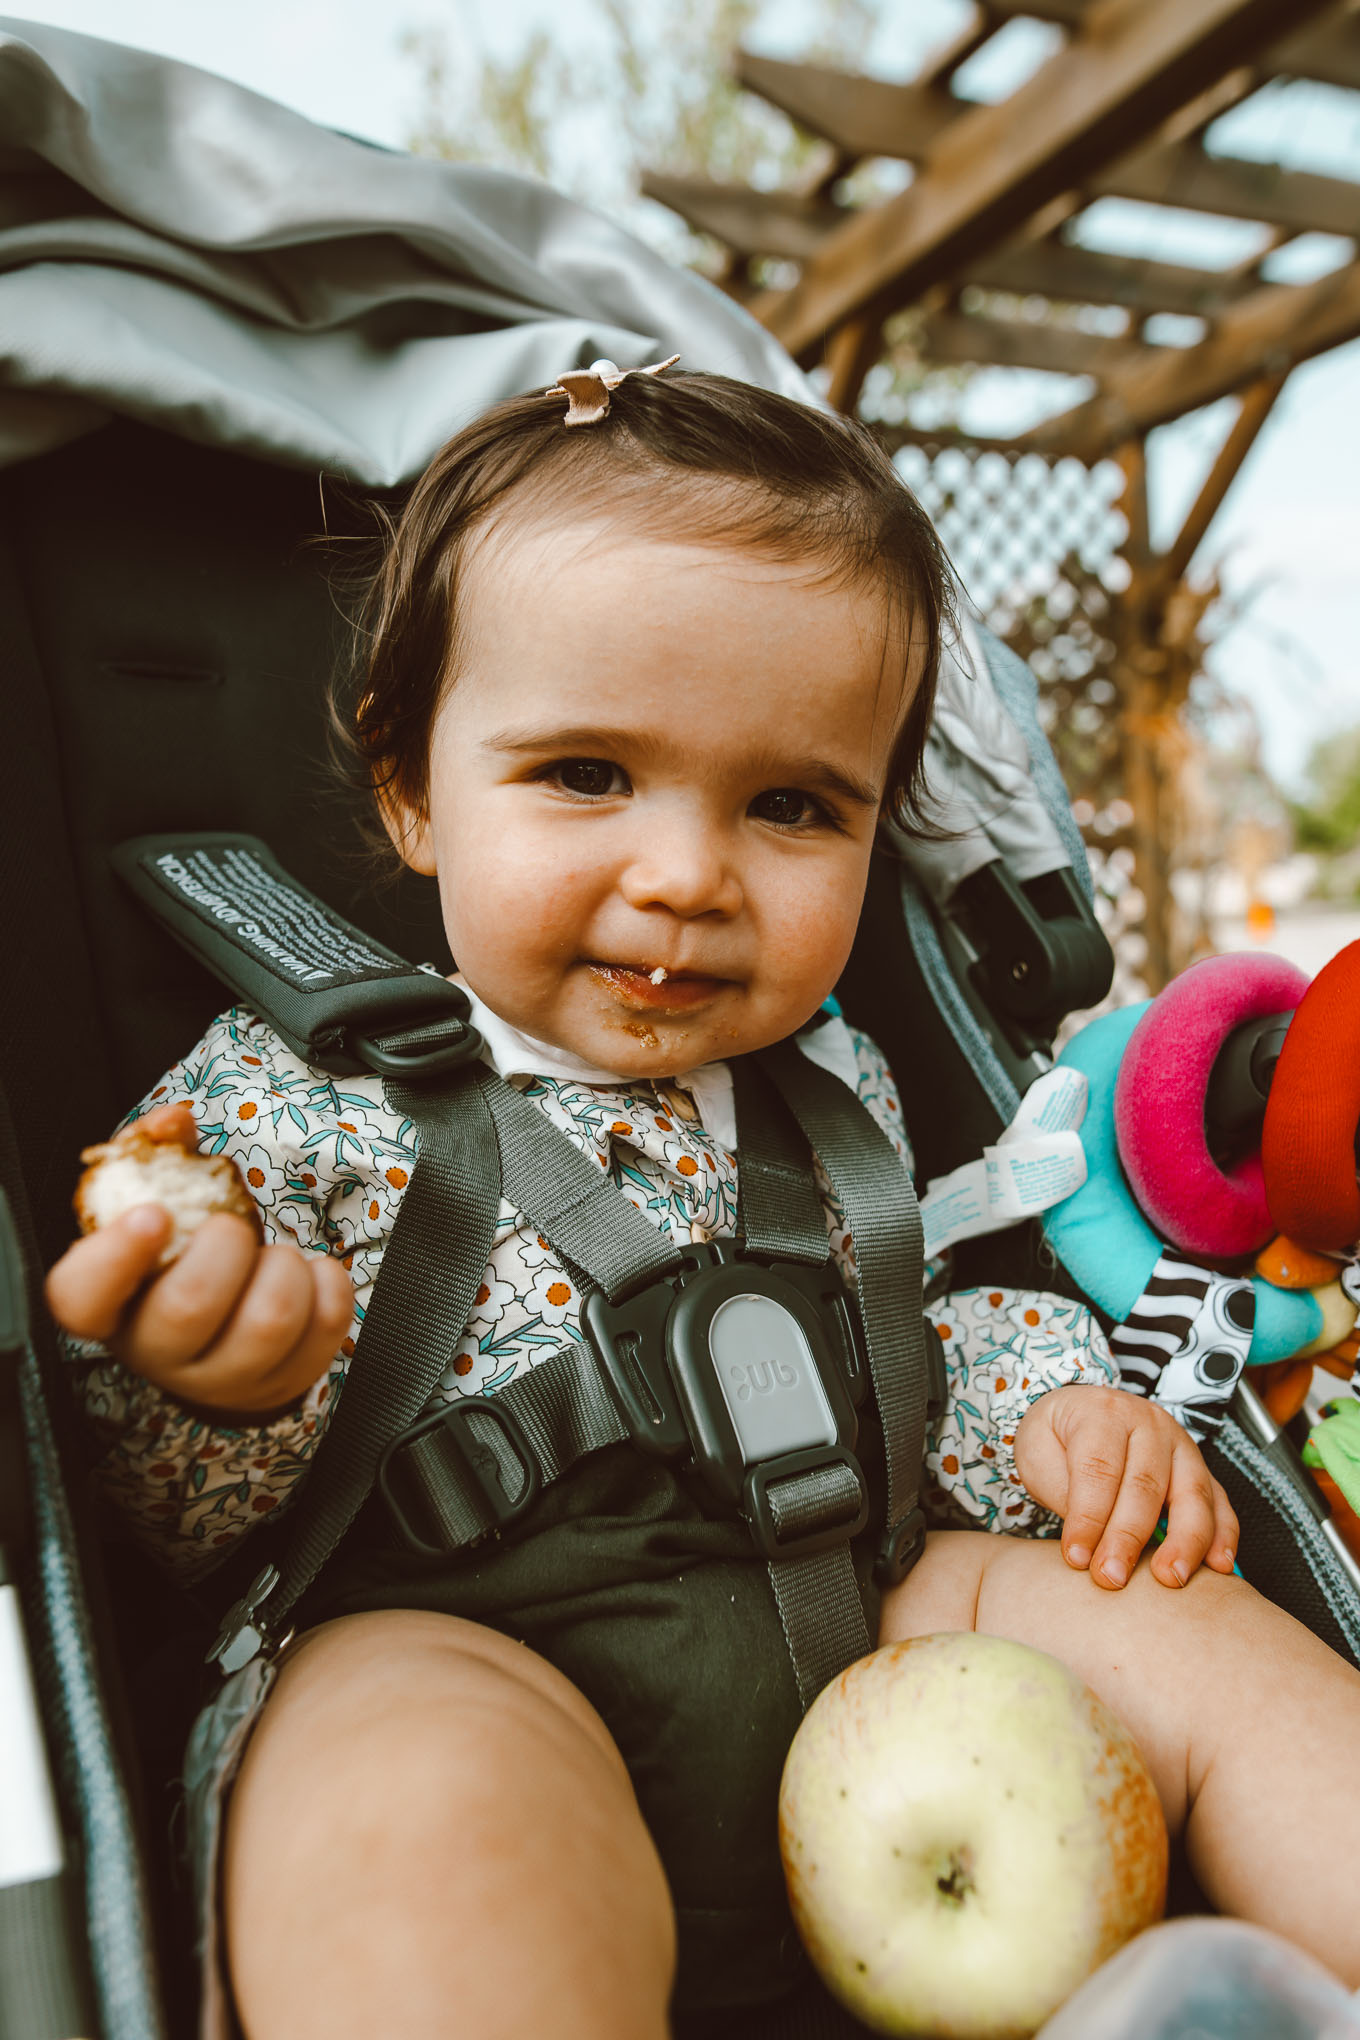 Apple Picking by popular Chicago lifestyle blog, Glass of Glam: image of a 1 year old girl sitting in a stroller and eating an apple cider donut.